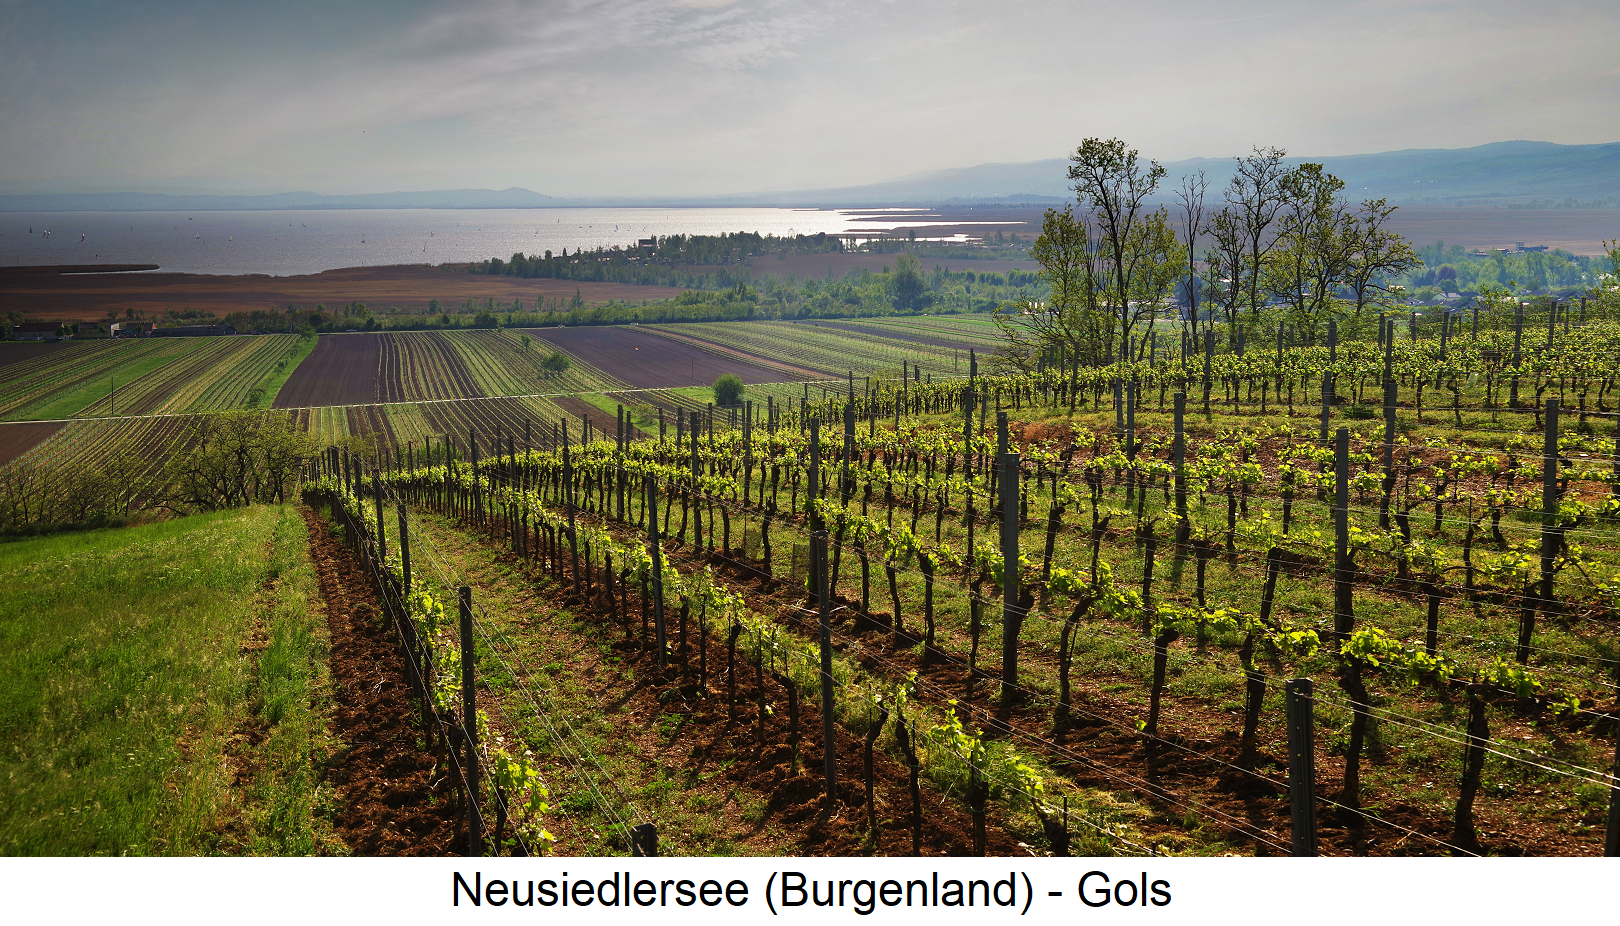 Neusiedlersee - Gols with vineyards